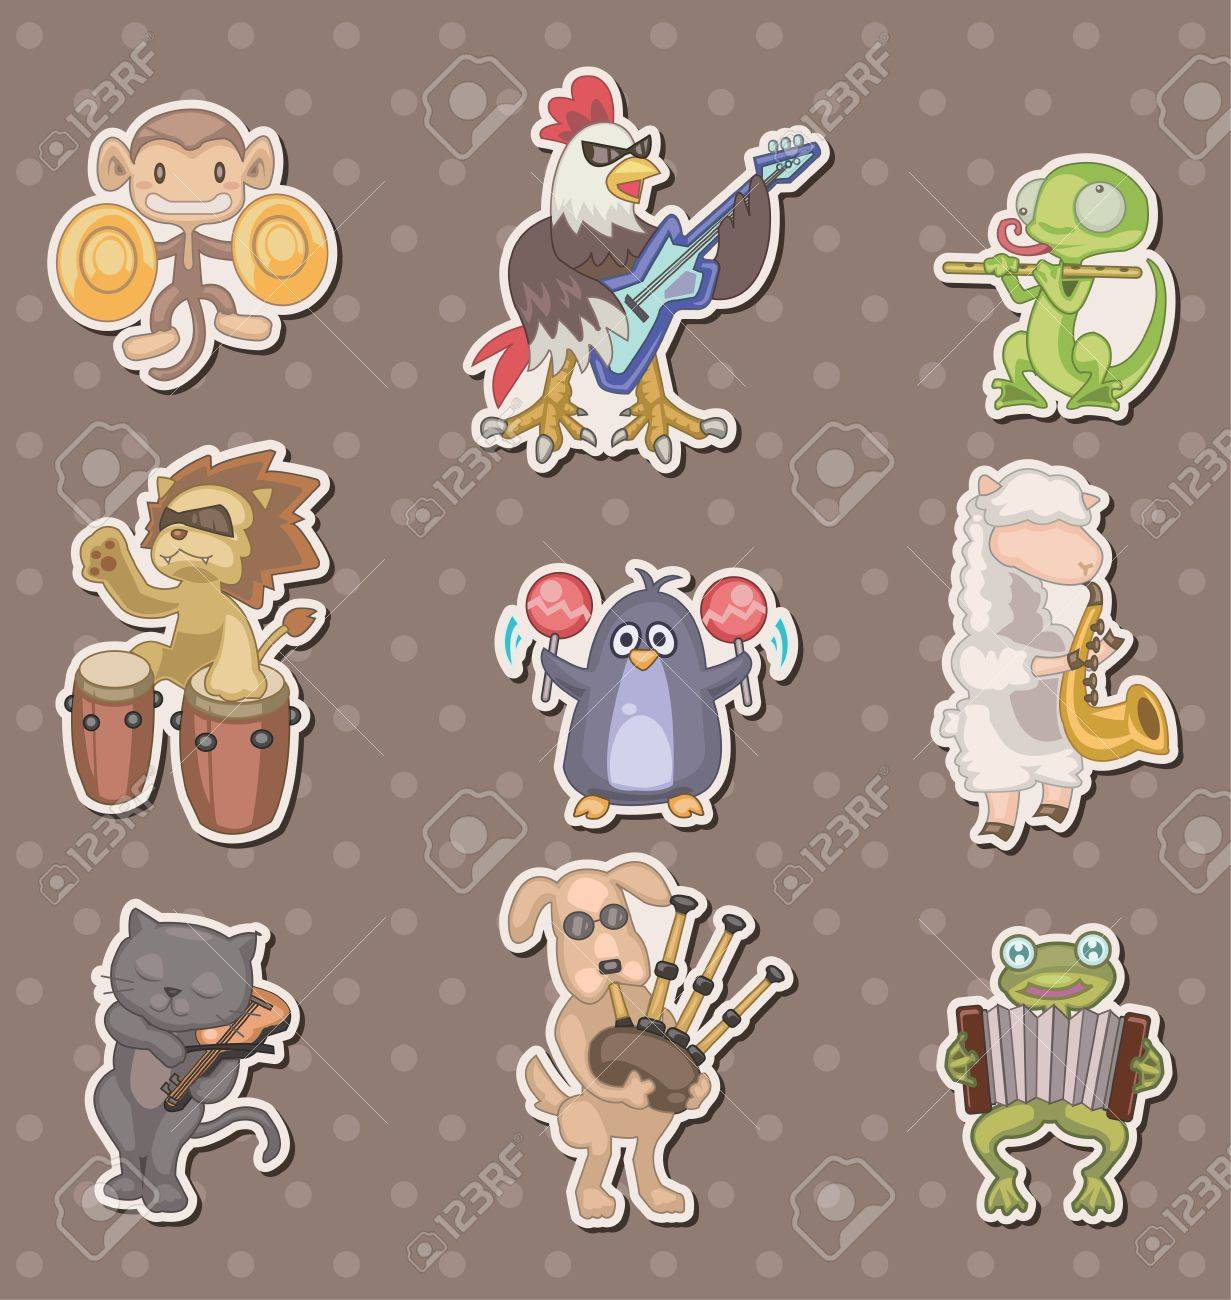 animal play music stickers Stock Vector - 13397844